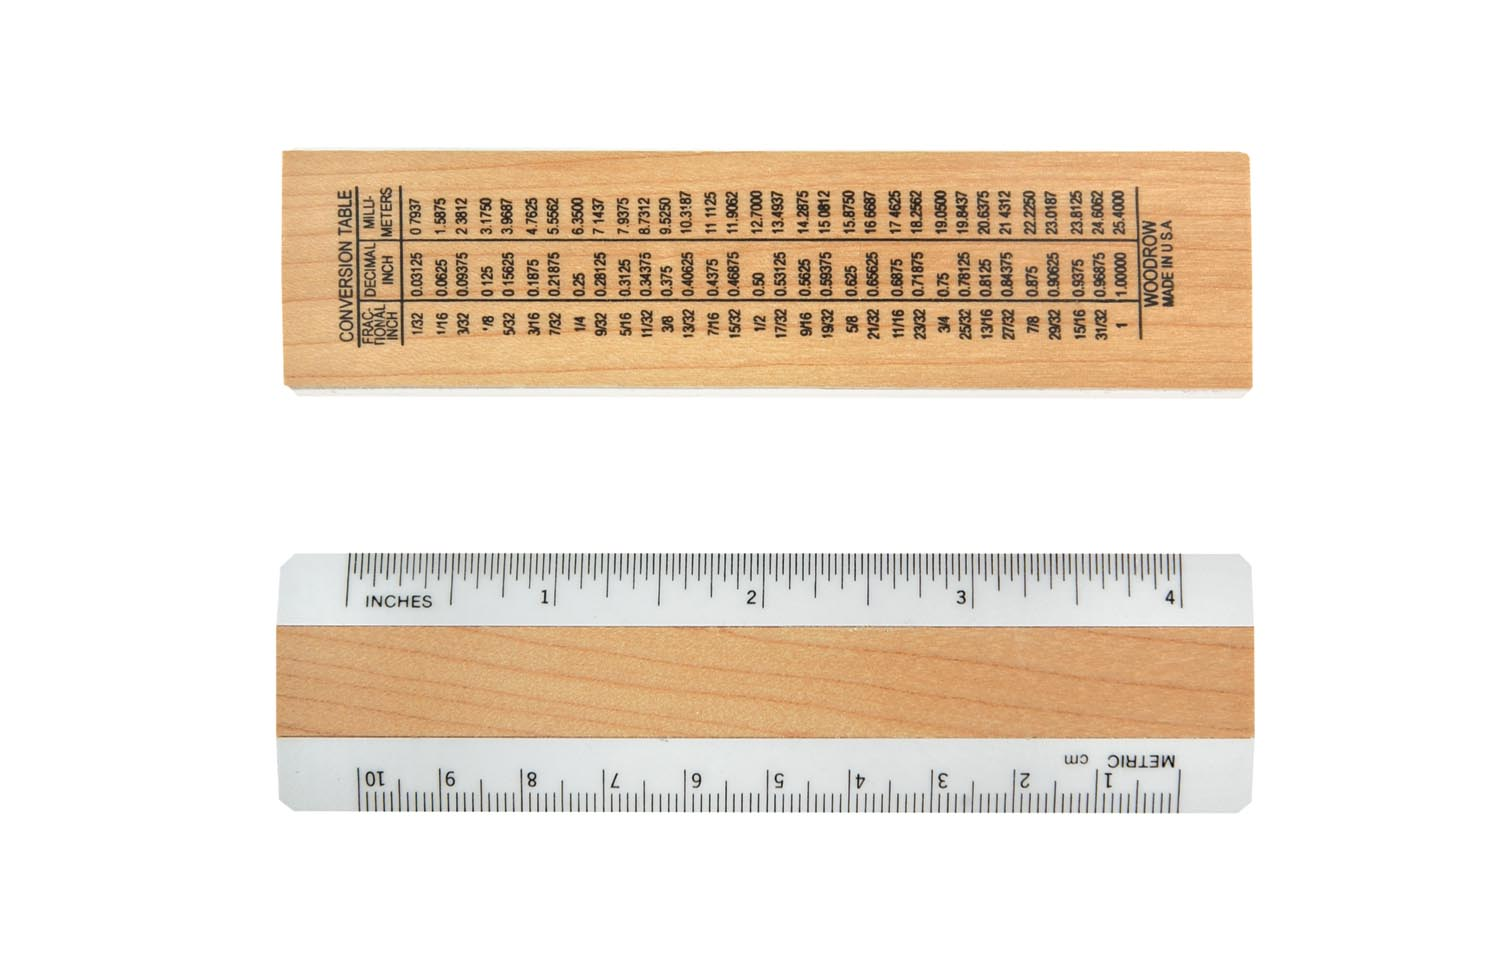 43a 4inch Inches Metric Ruler